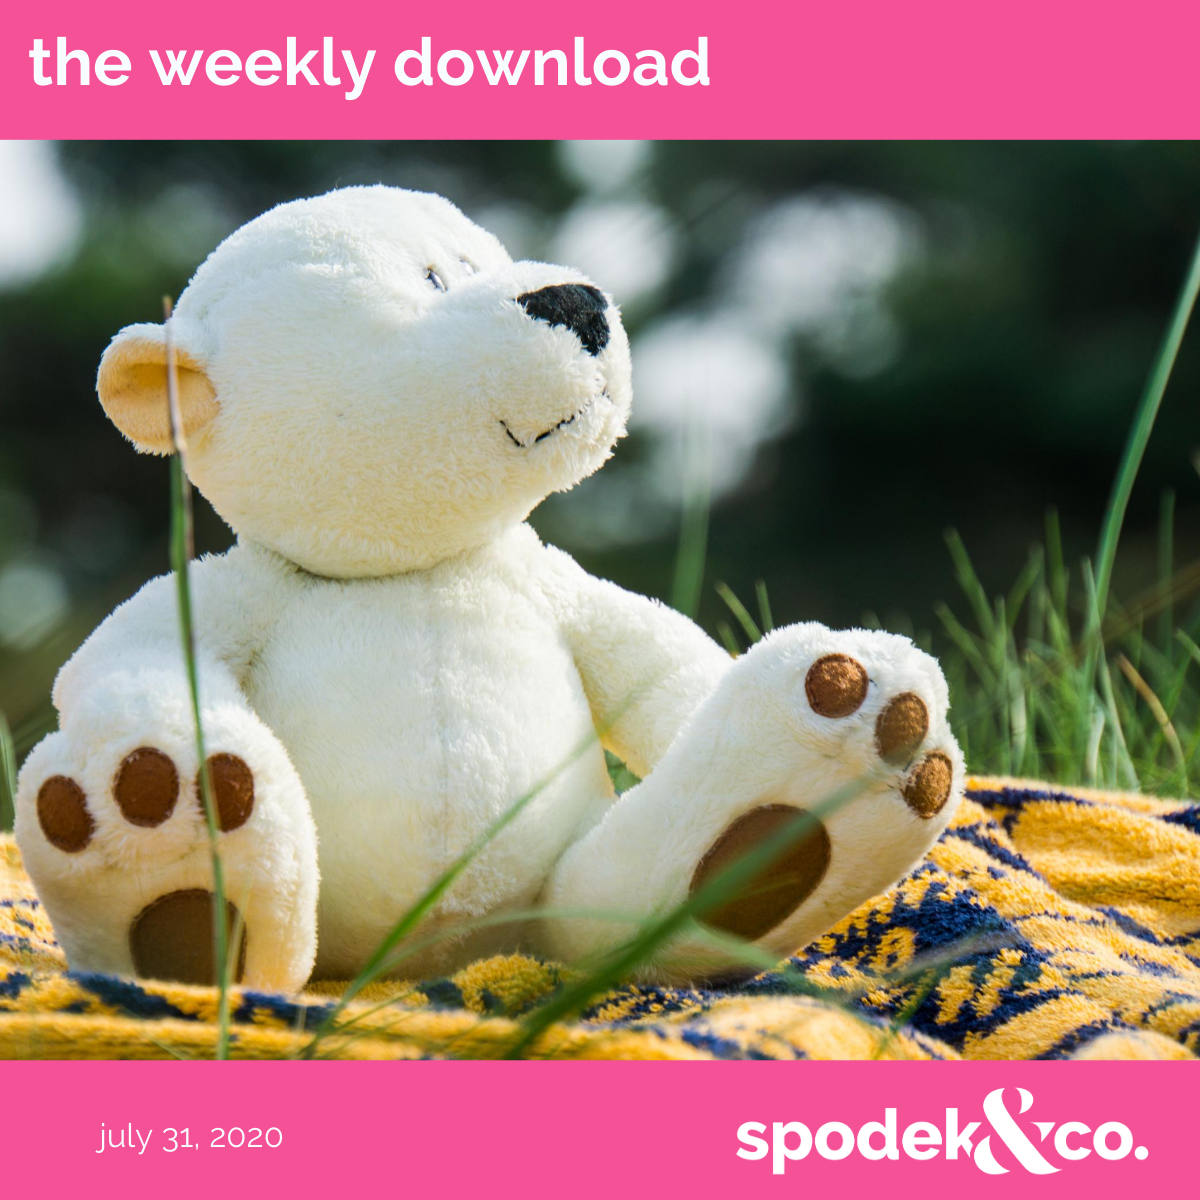 The Weekly Download – July 31, 2020